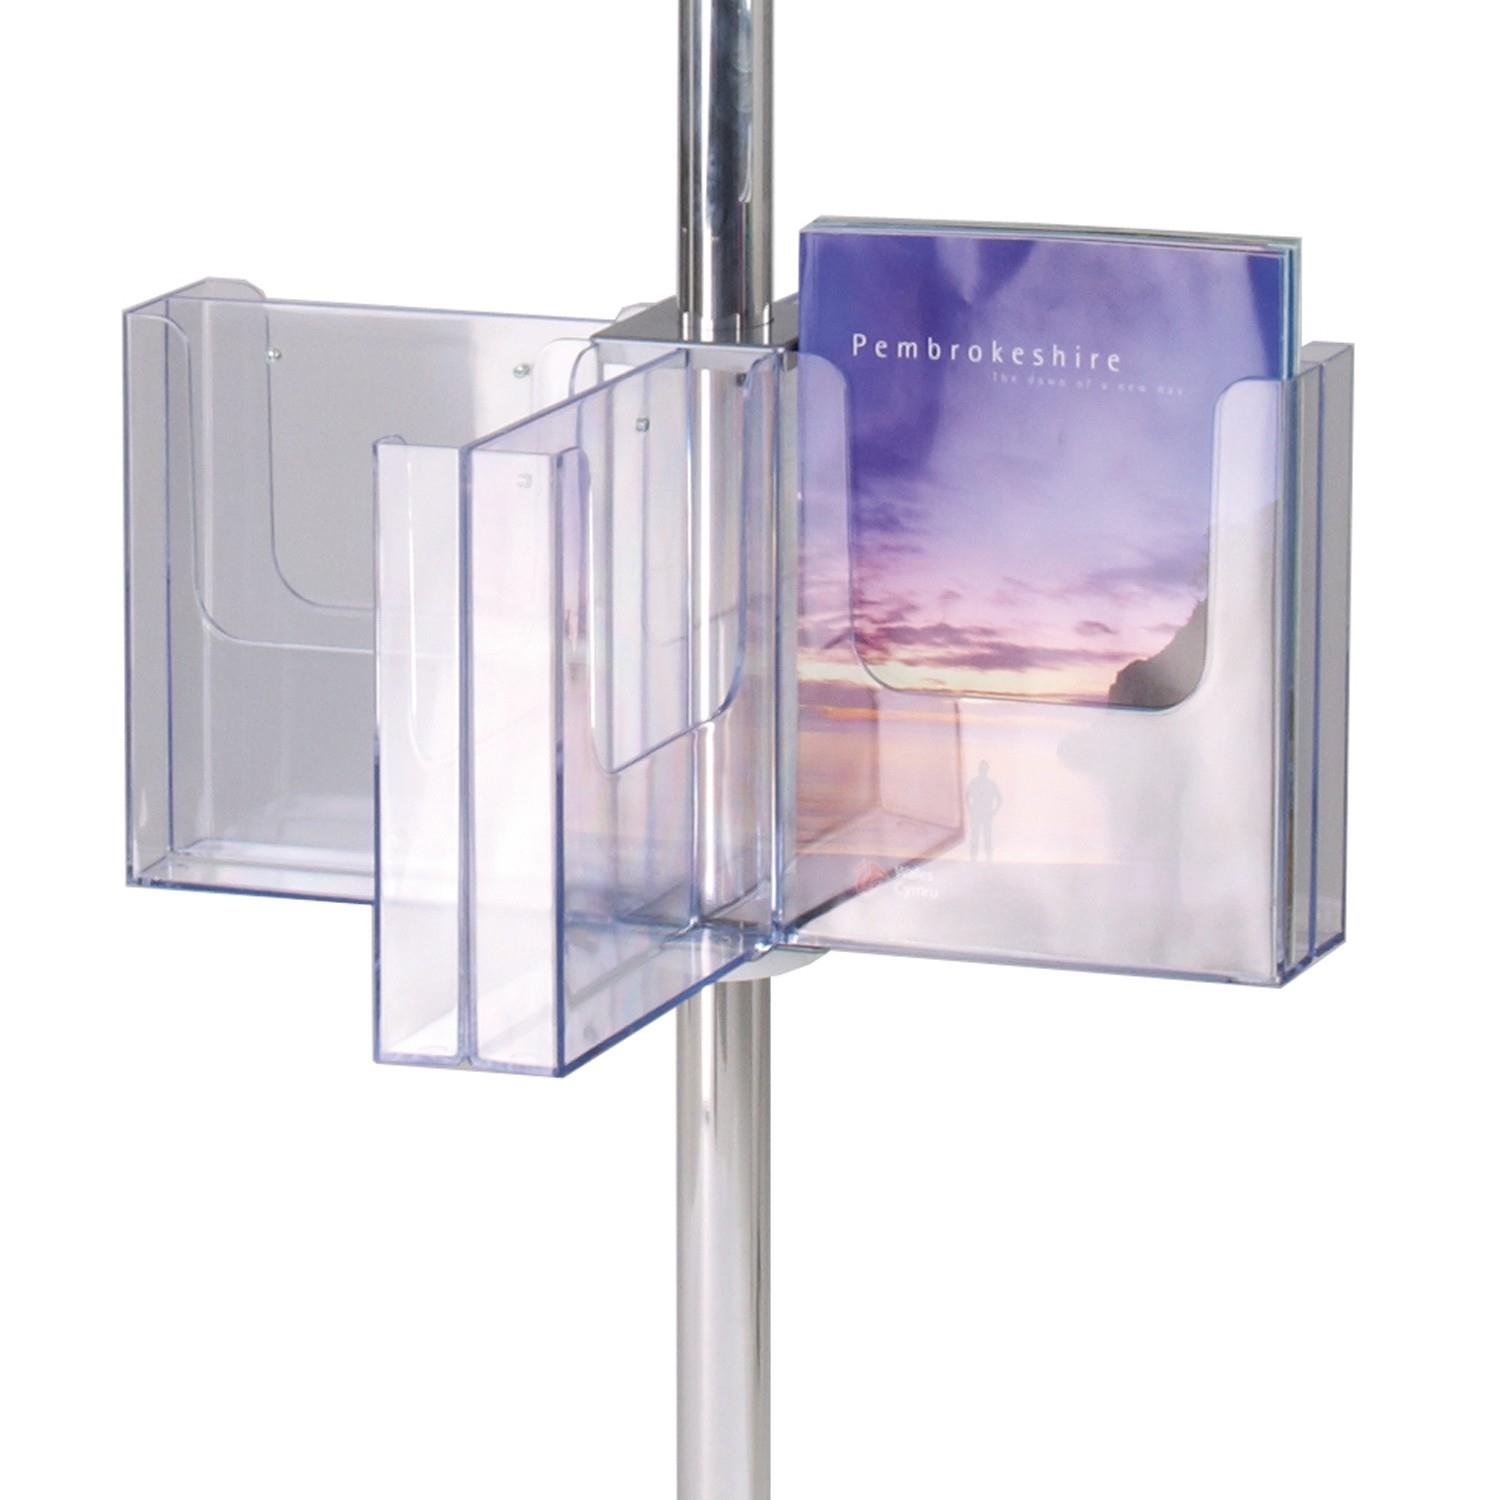 Pirouette Literature Dispenser - Modular Display